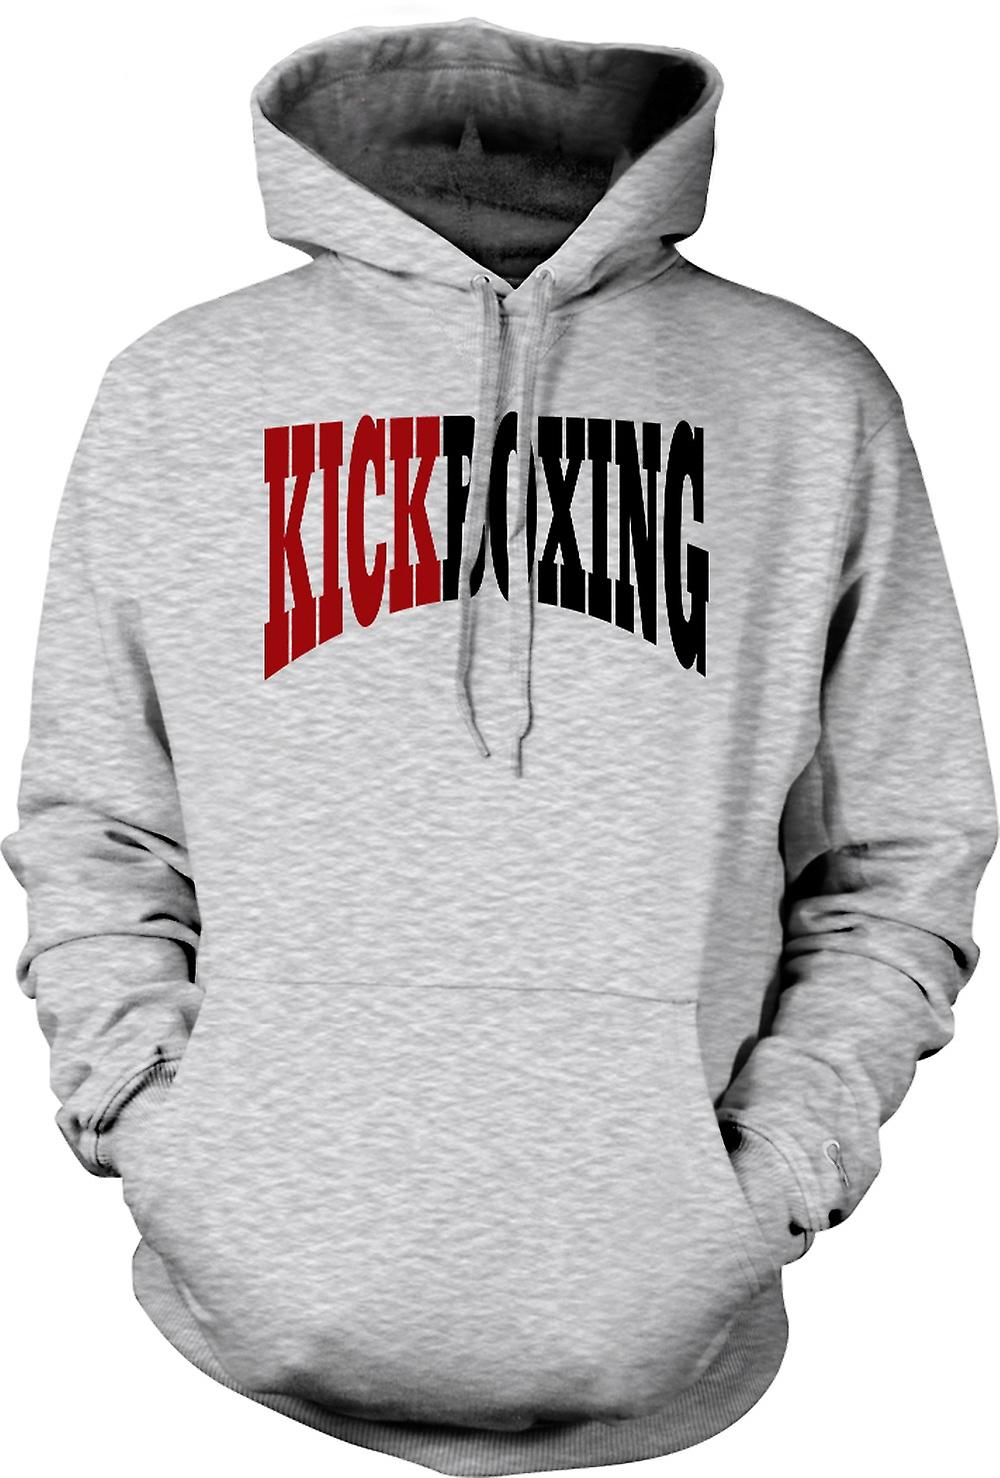 Mens Hoodie - Kickboxing - Martial Art - Slogan